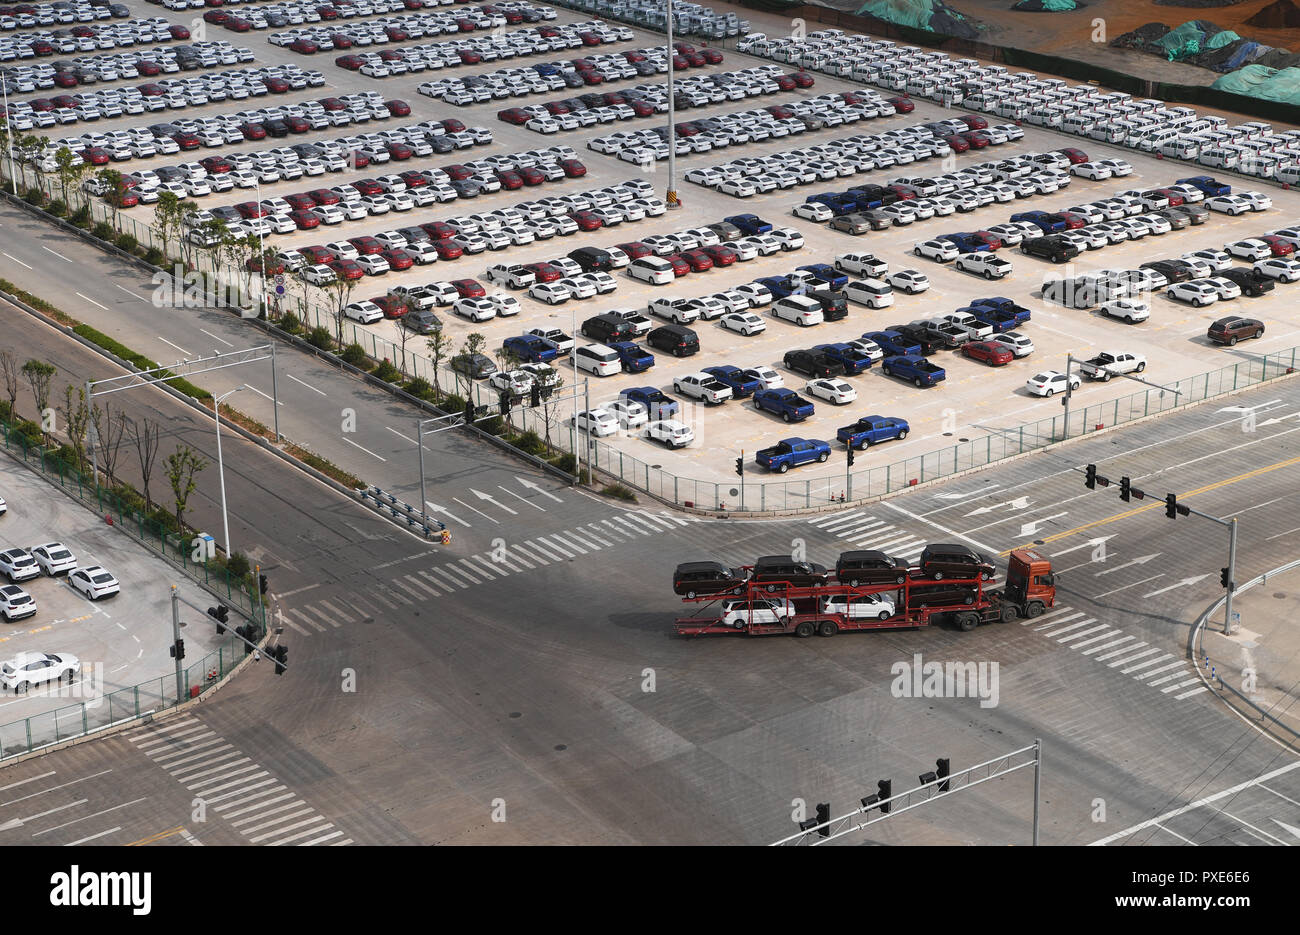 (181022) -- BEIJING, Oct. 22, 2018 (Xinhua) -- A truck loaded with new cars drives in Guoyuan Port in Chongqing, southwest China, Aug. 20, 2018. China's road freight transport continued fast expansion in the first nine months of 2018, the Ministry of Transport said in a statement Oct. 20, 2018. From January to September, the amount of cargo carried on roads, which takes up the lion's share in China's total cargo transport, increased 7.5 percent year on year to 28.64 billion tonnes. The growth came amid China's steady economic growth, which stood at 6.7 percent in the three quarters, above the Stock Photo